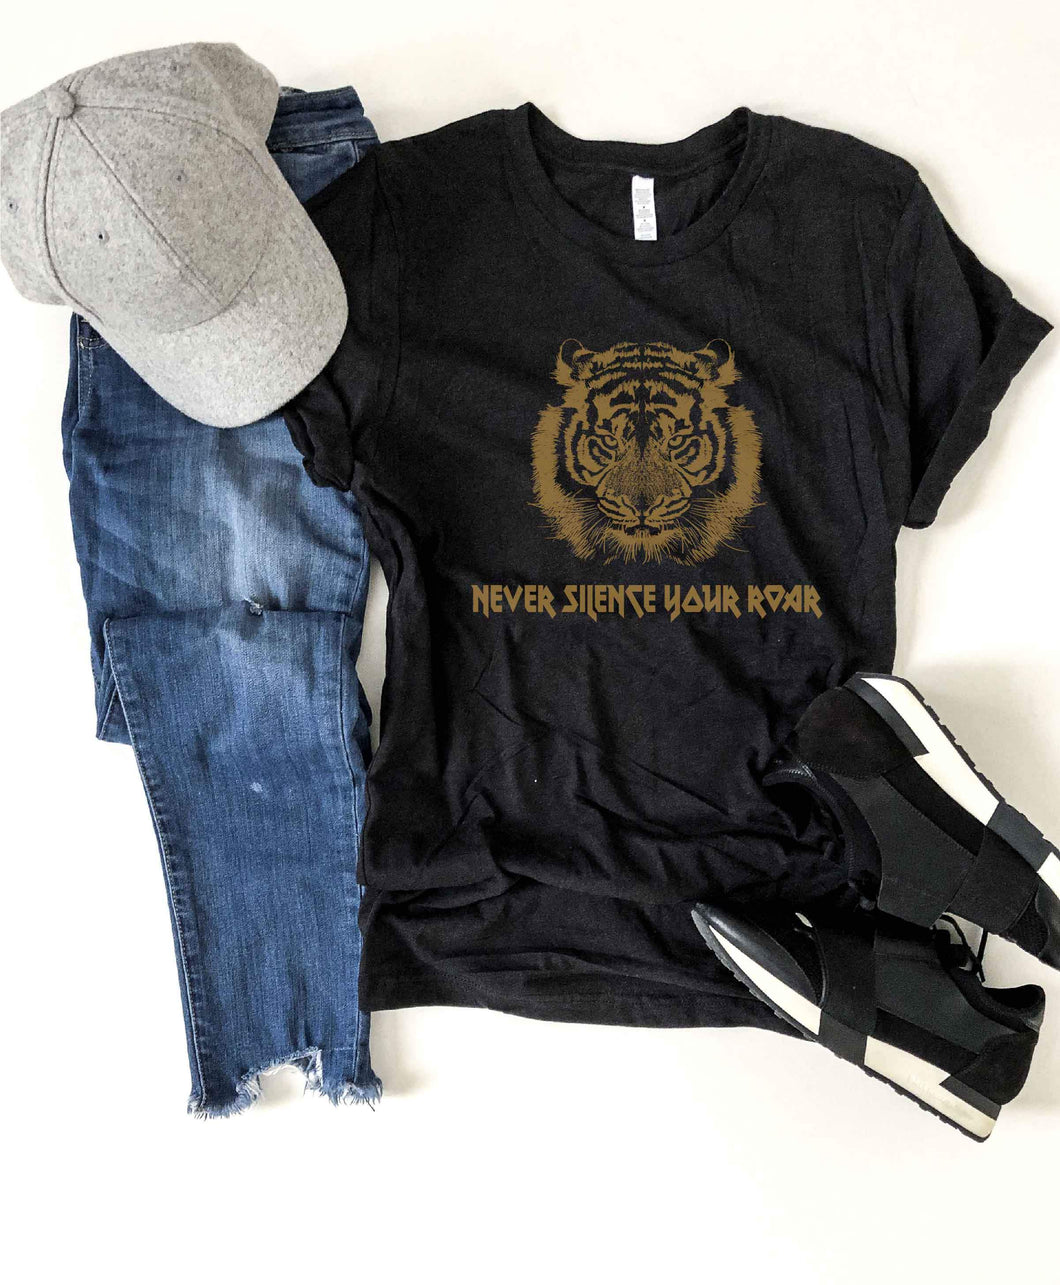 Never silence your roar kids tee Short sleeve kids tee Bella canvas 3001y